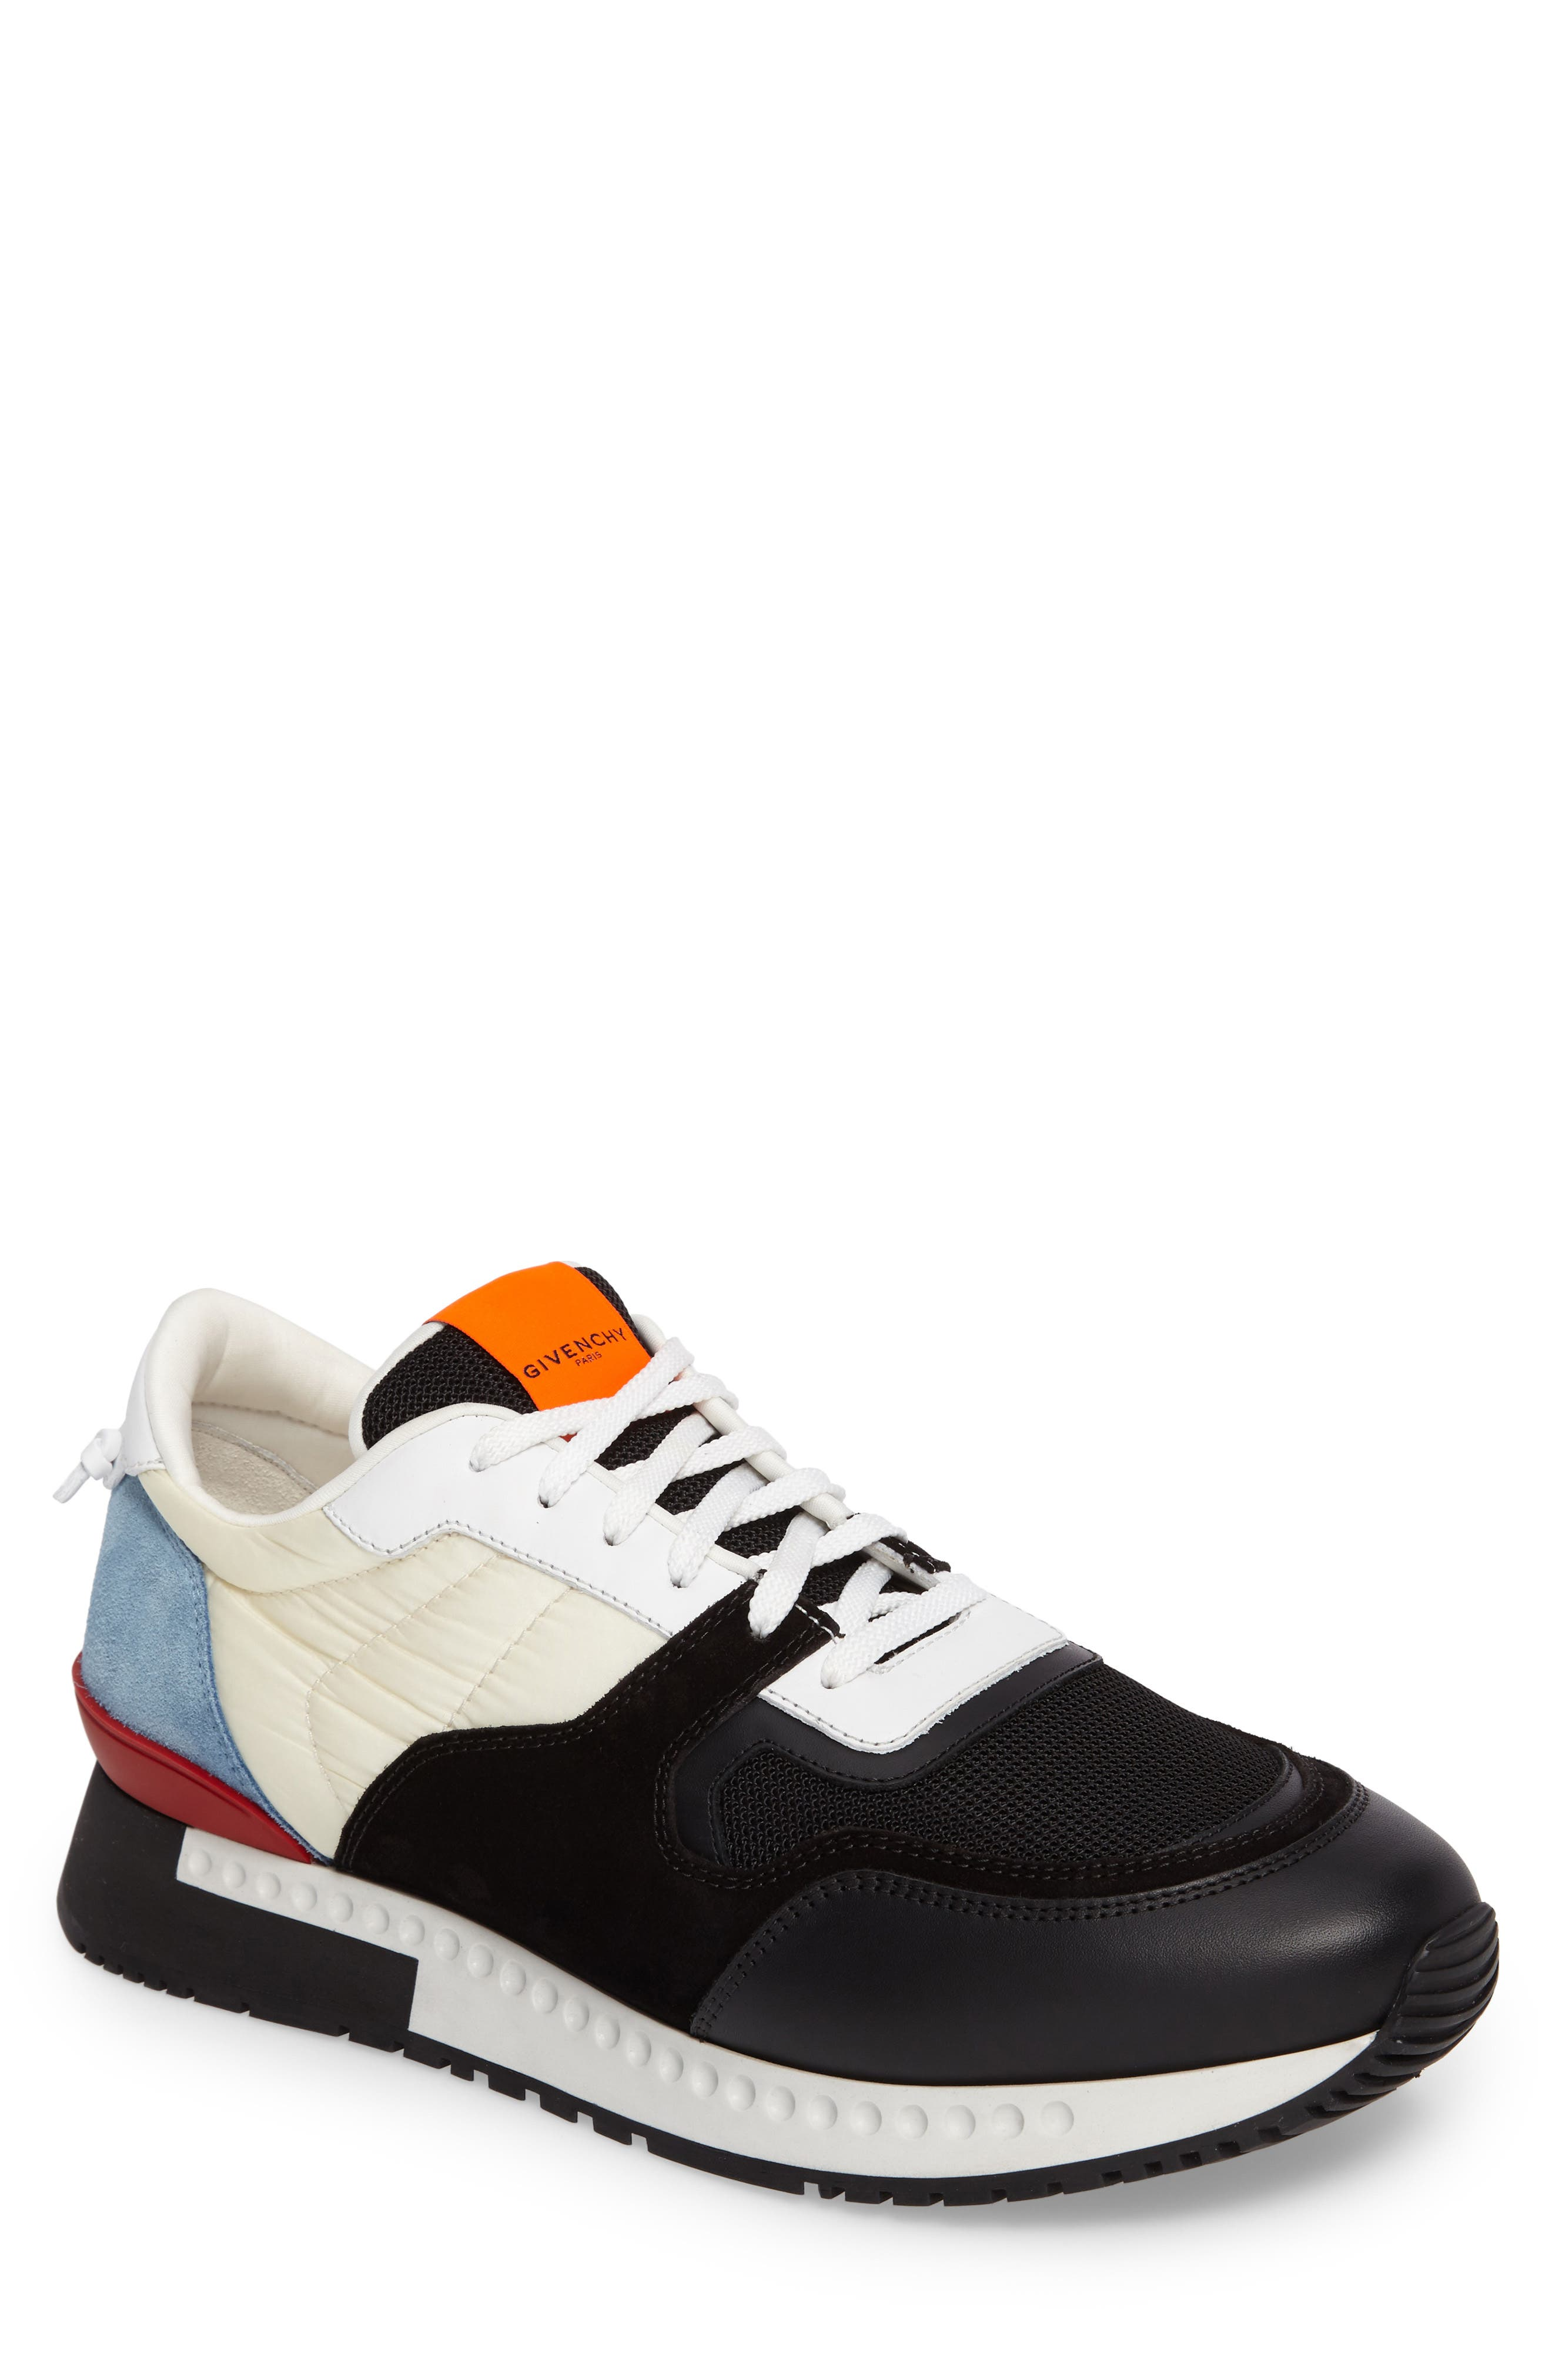 Alternate Image 1 Selected - Givenchy 'Active Runner' Sneaker (Men)